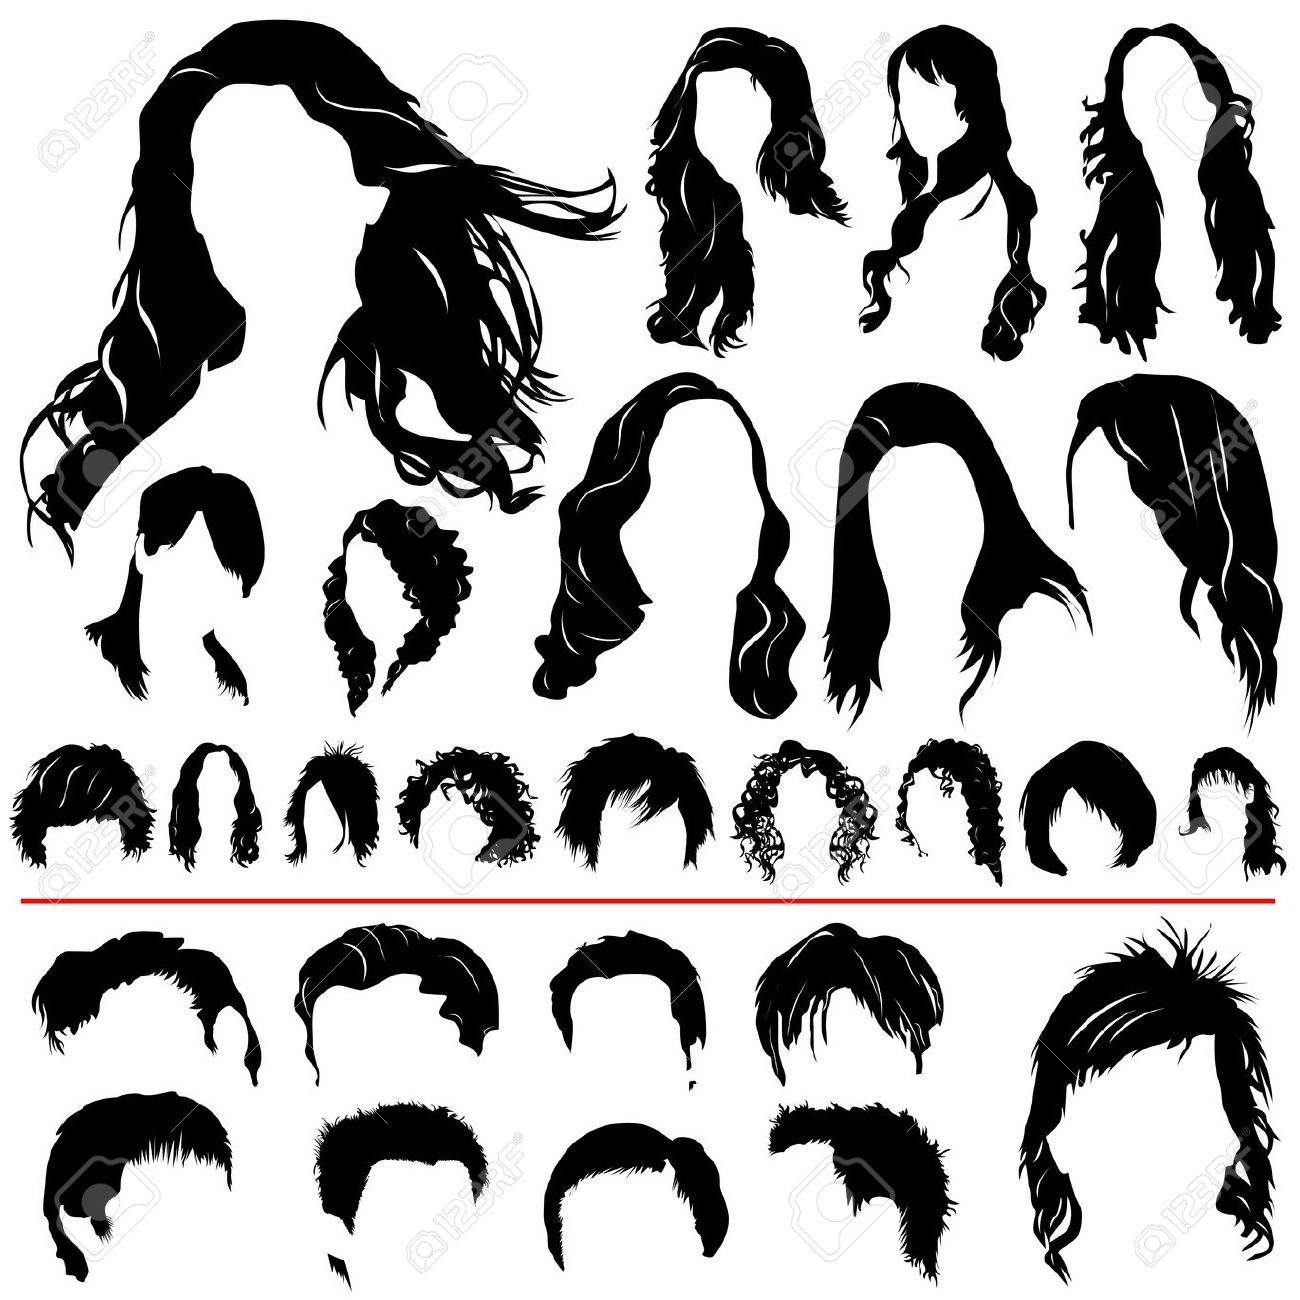 women and men hair vector (different style) Stock Vector - 9592751